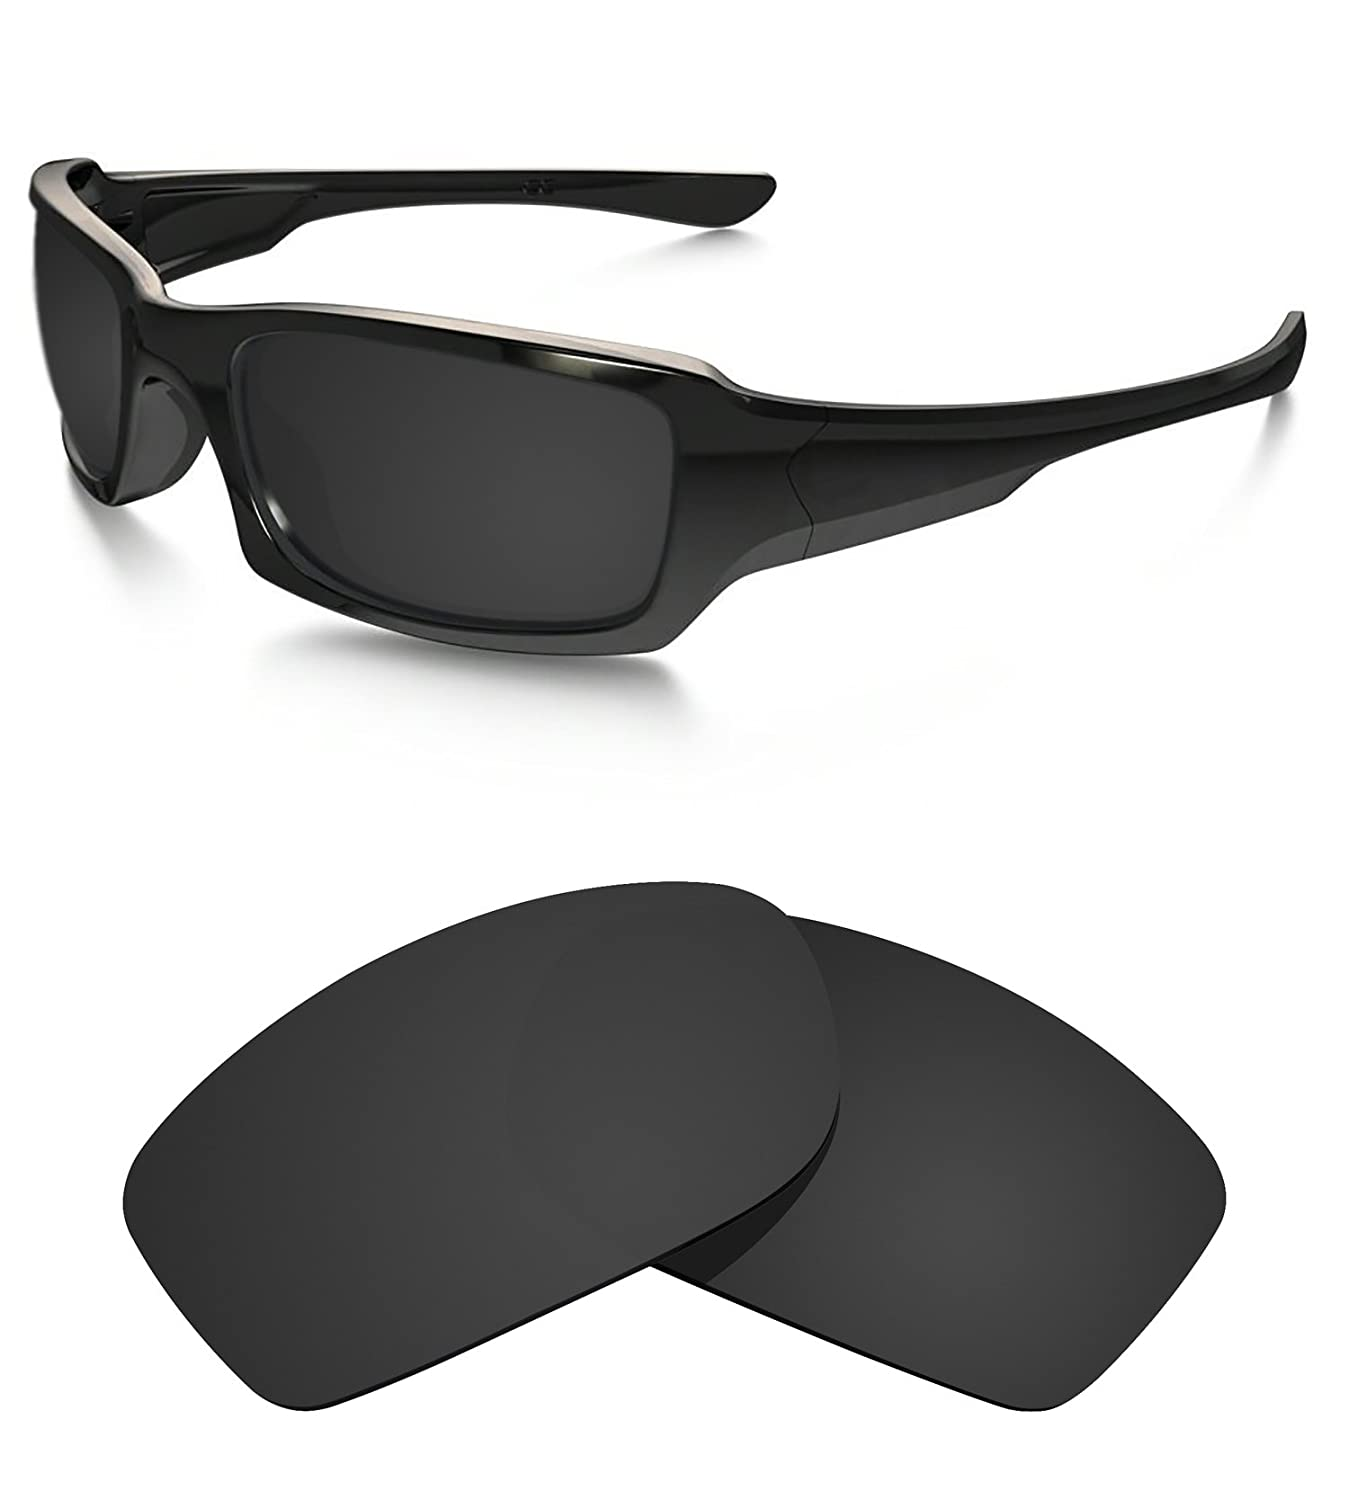 1caec5009bf Amazon.com   Littlebird4 1.5mm Polarized Replacement Lenses for Oakley  Fives Squared Sunglasses - Multiple Options (Dark Black)   Sports   Outdoors